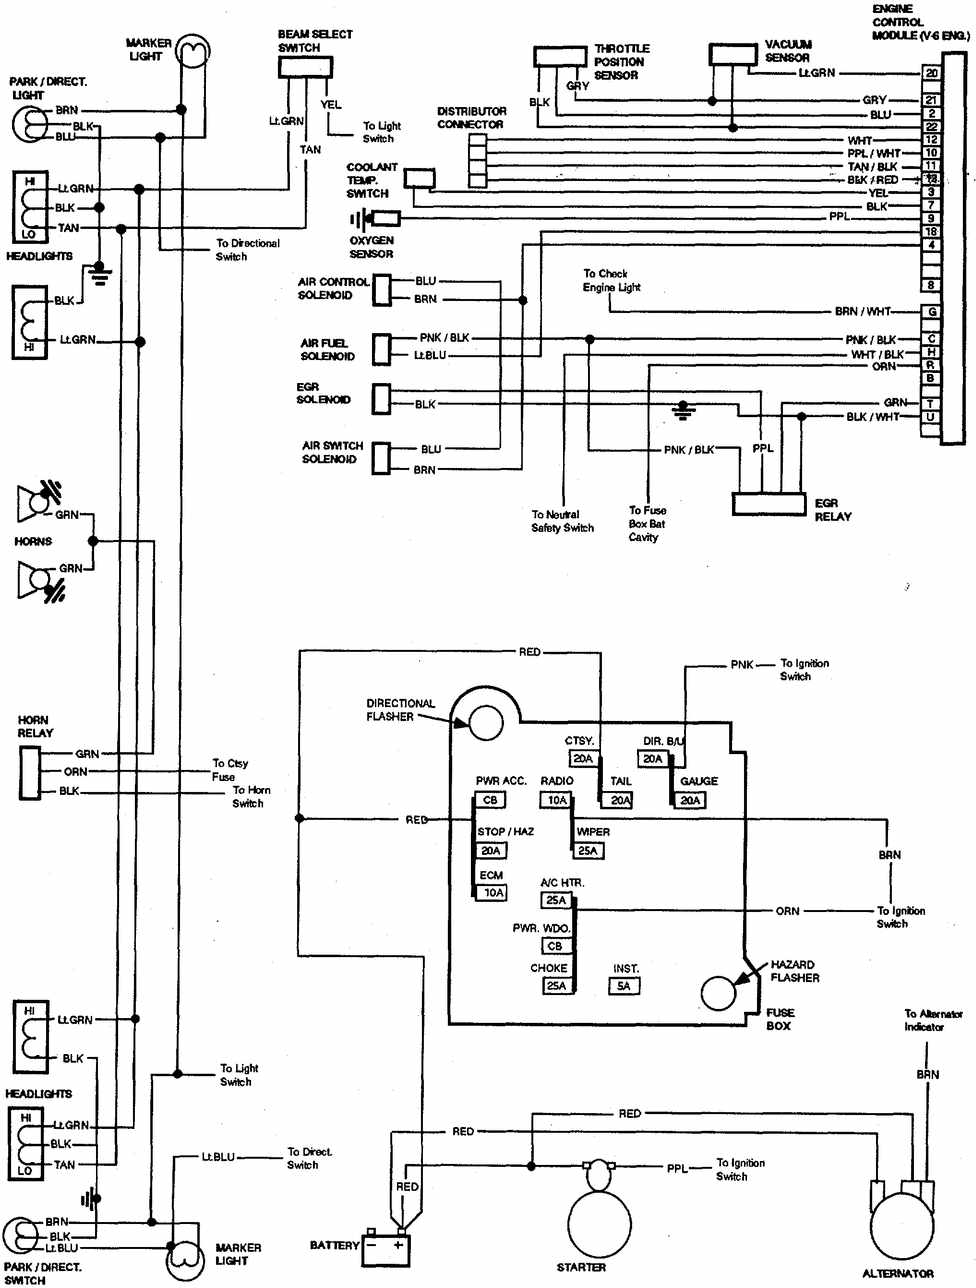 Monza Vega Wiring Diagram Guide And Troubleshooting Of 1977 Chevrolet Pickup Get Free Image About 78 Chevy Caprice Todays Rh 11 9 12 1813weddingbarn Com 1980 Spyder 1978